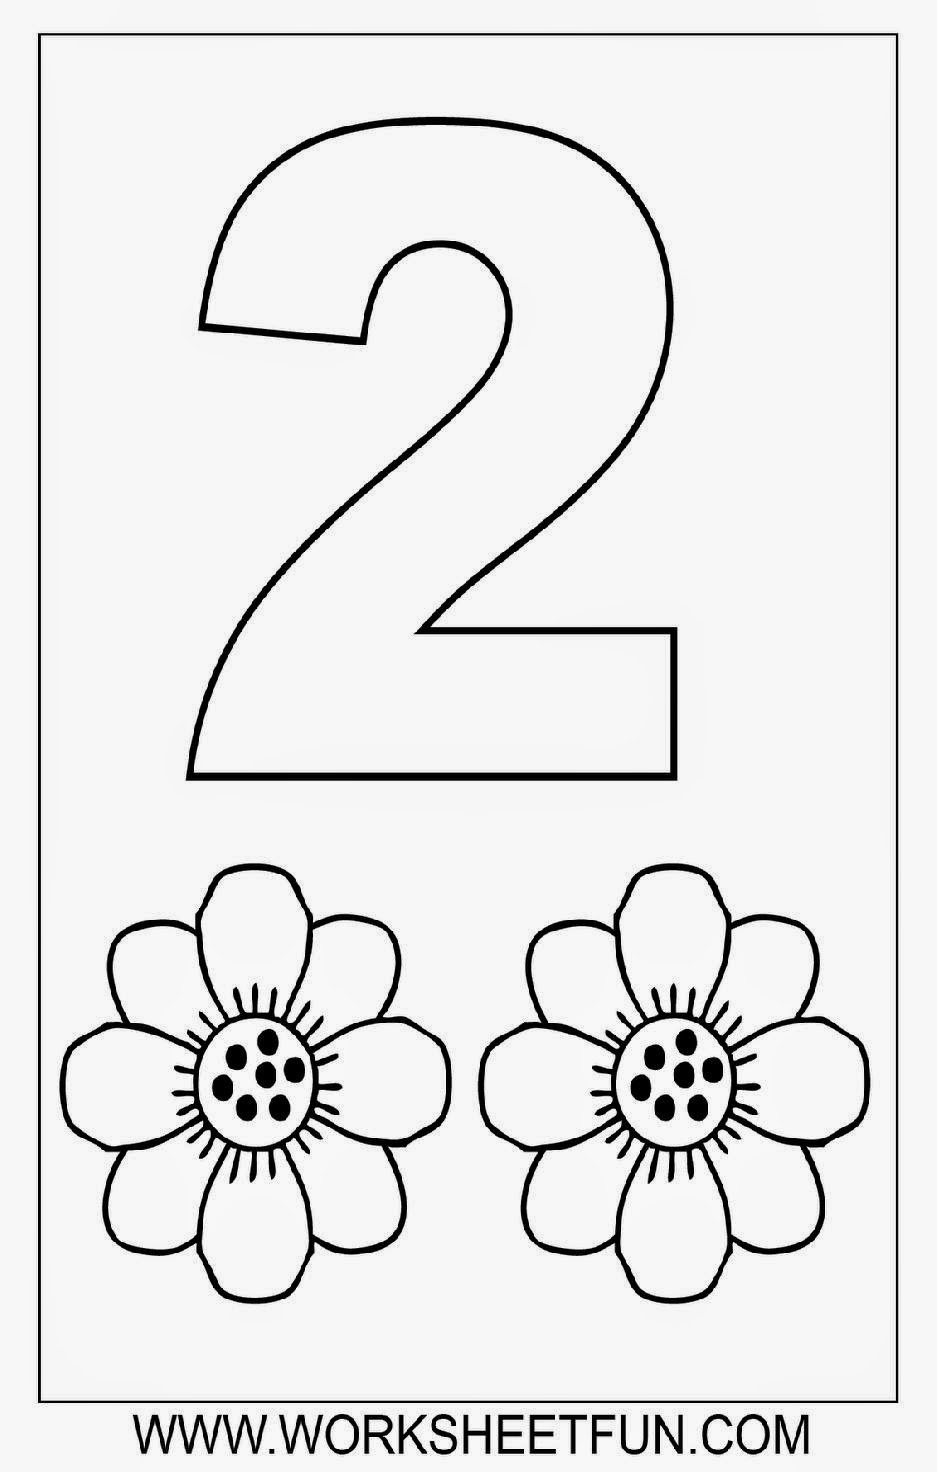 Number Coloring Sheets